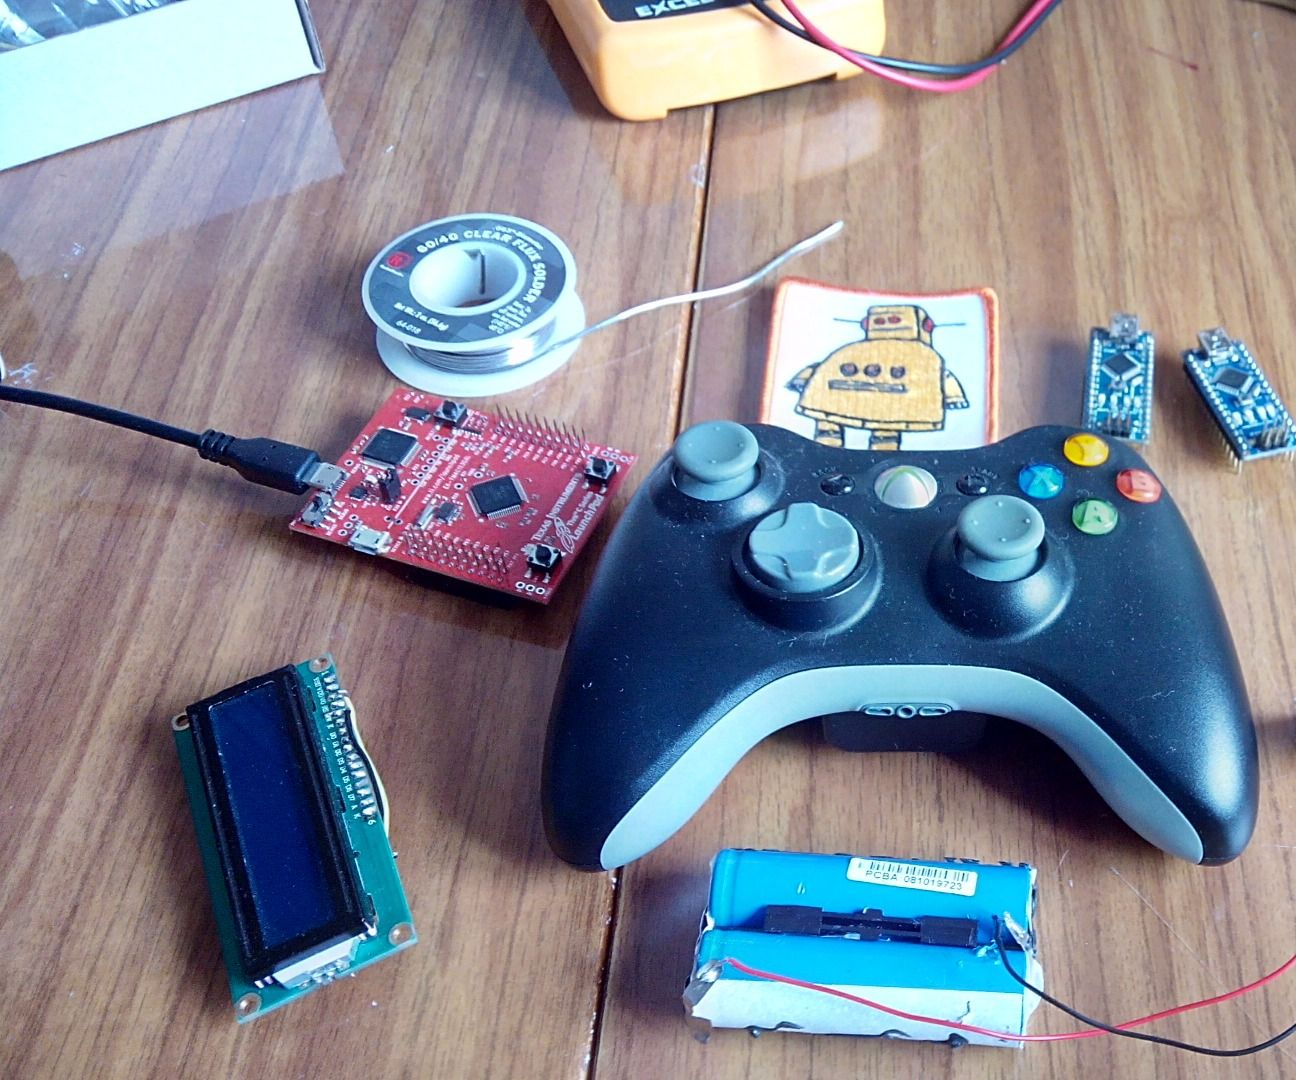 Controlling Arduino With Gamepad: 5 Steps (with Pictures)